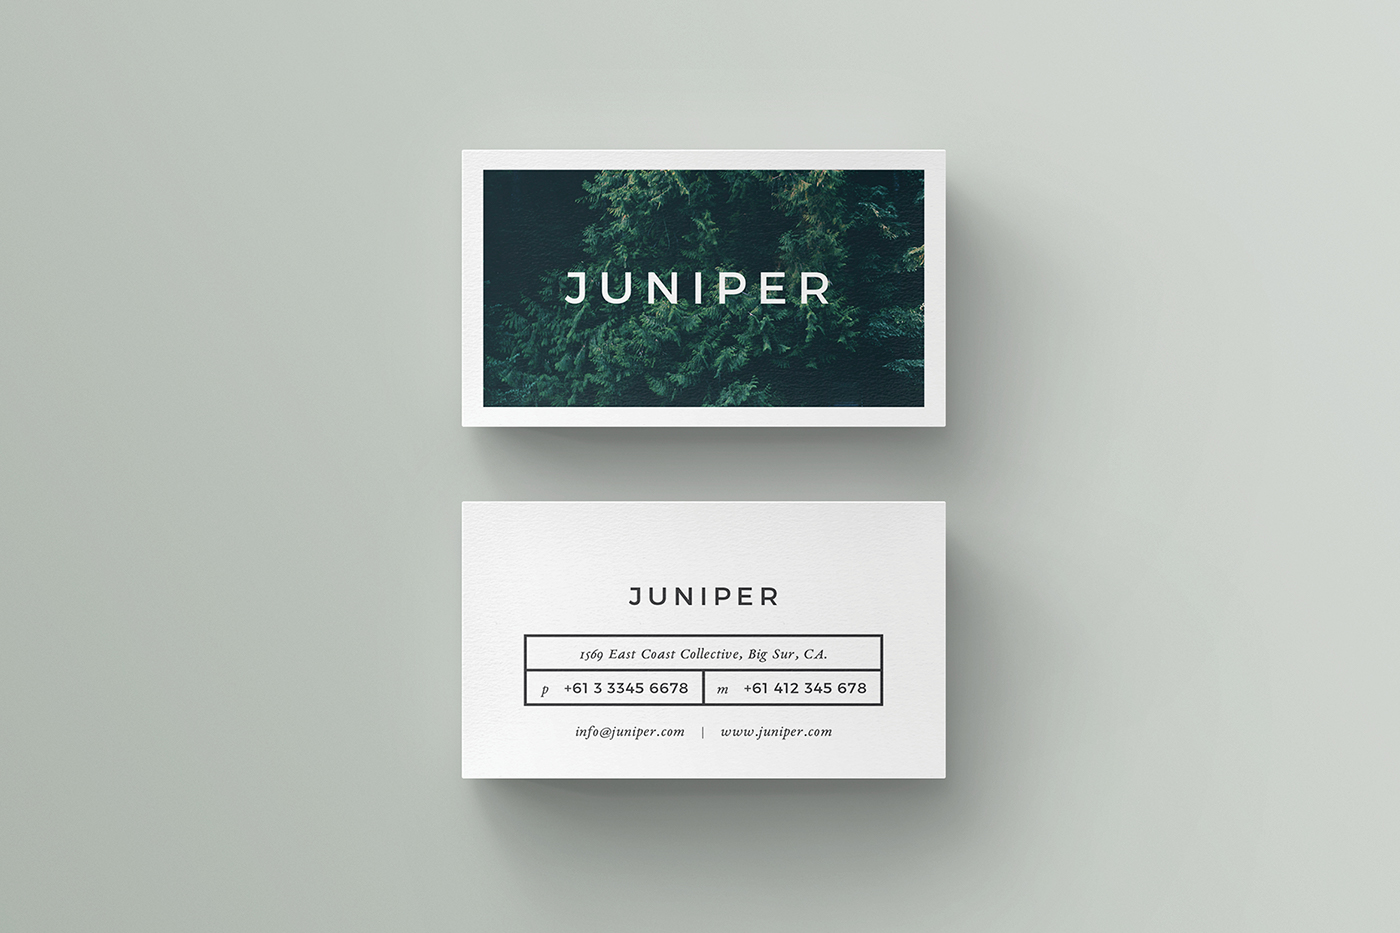 J U N I P E R Business Card On Behance - Indesign business card template free